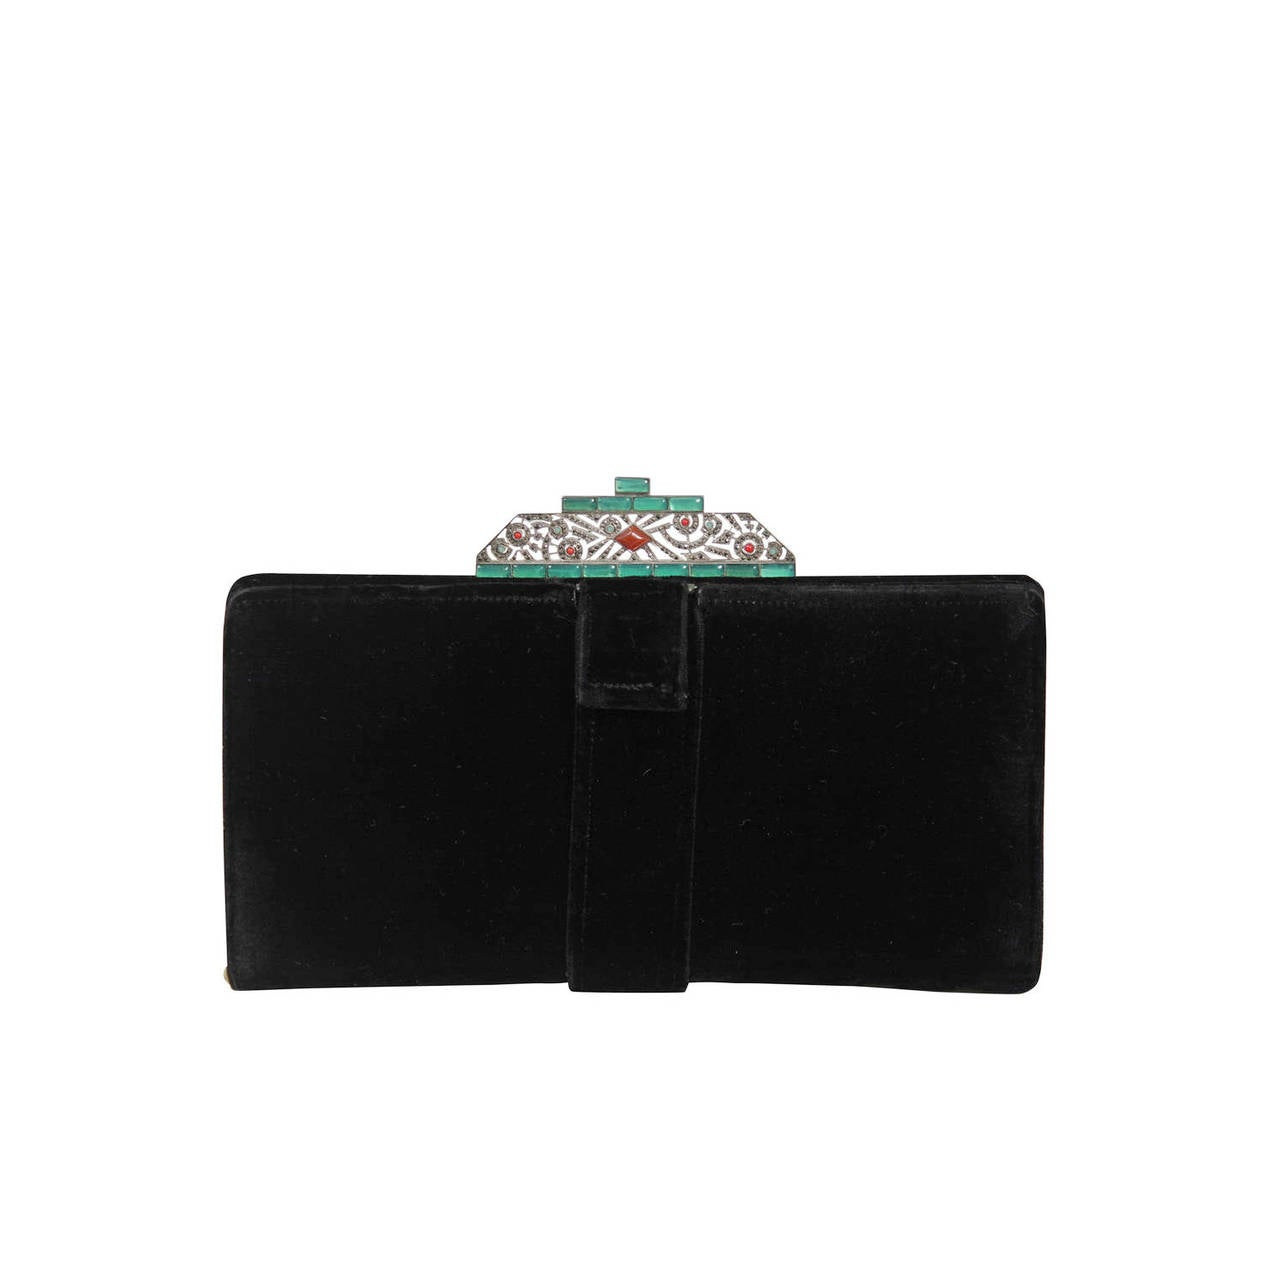 Vintage Deco Velvet Evening Clutch with Jewel Details 1